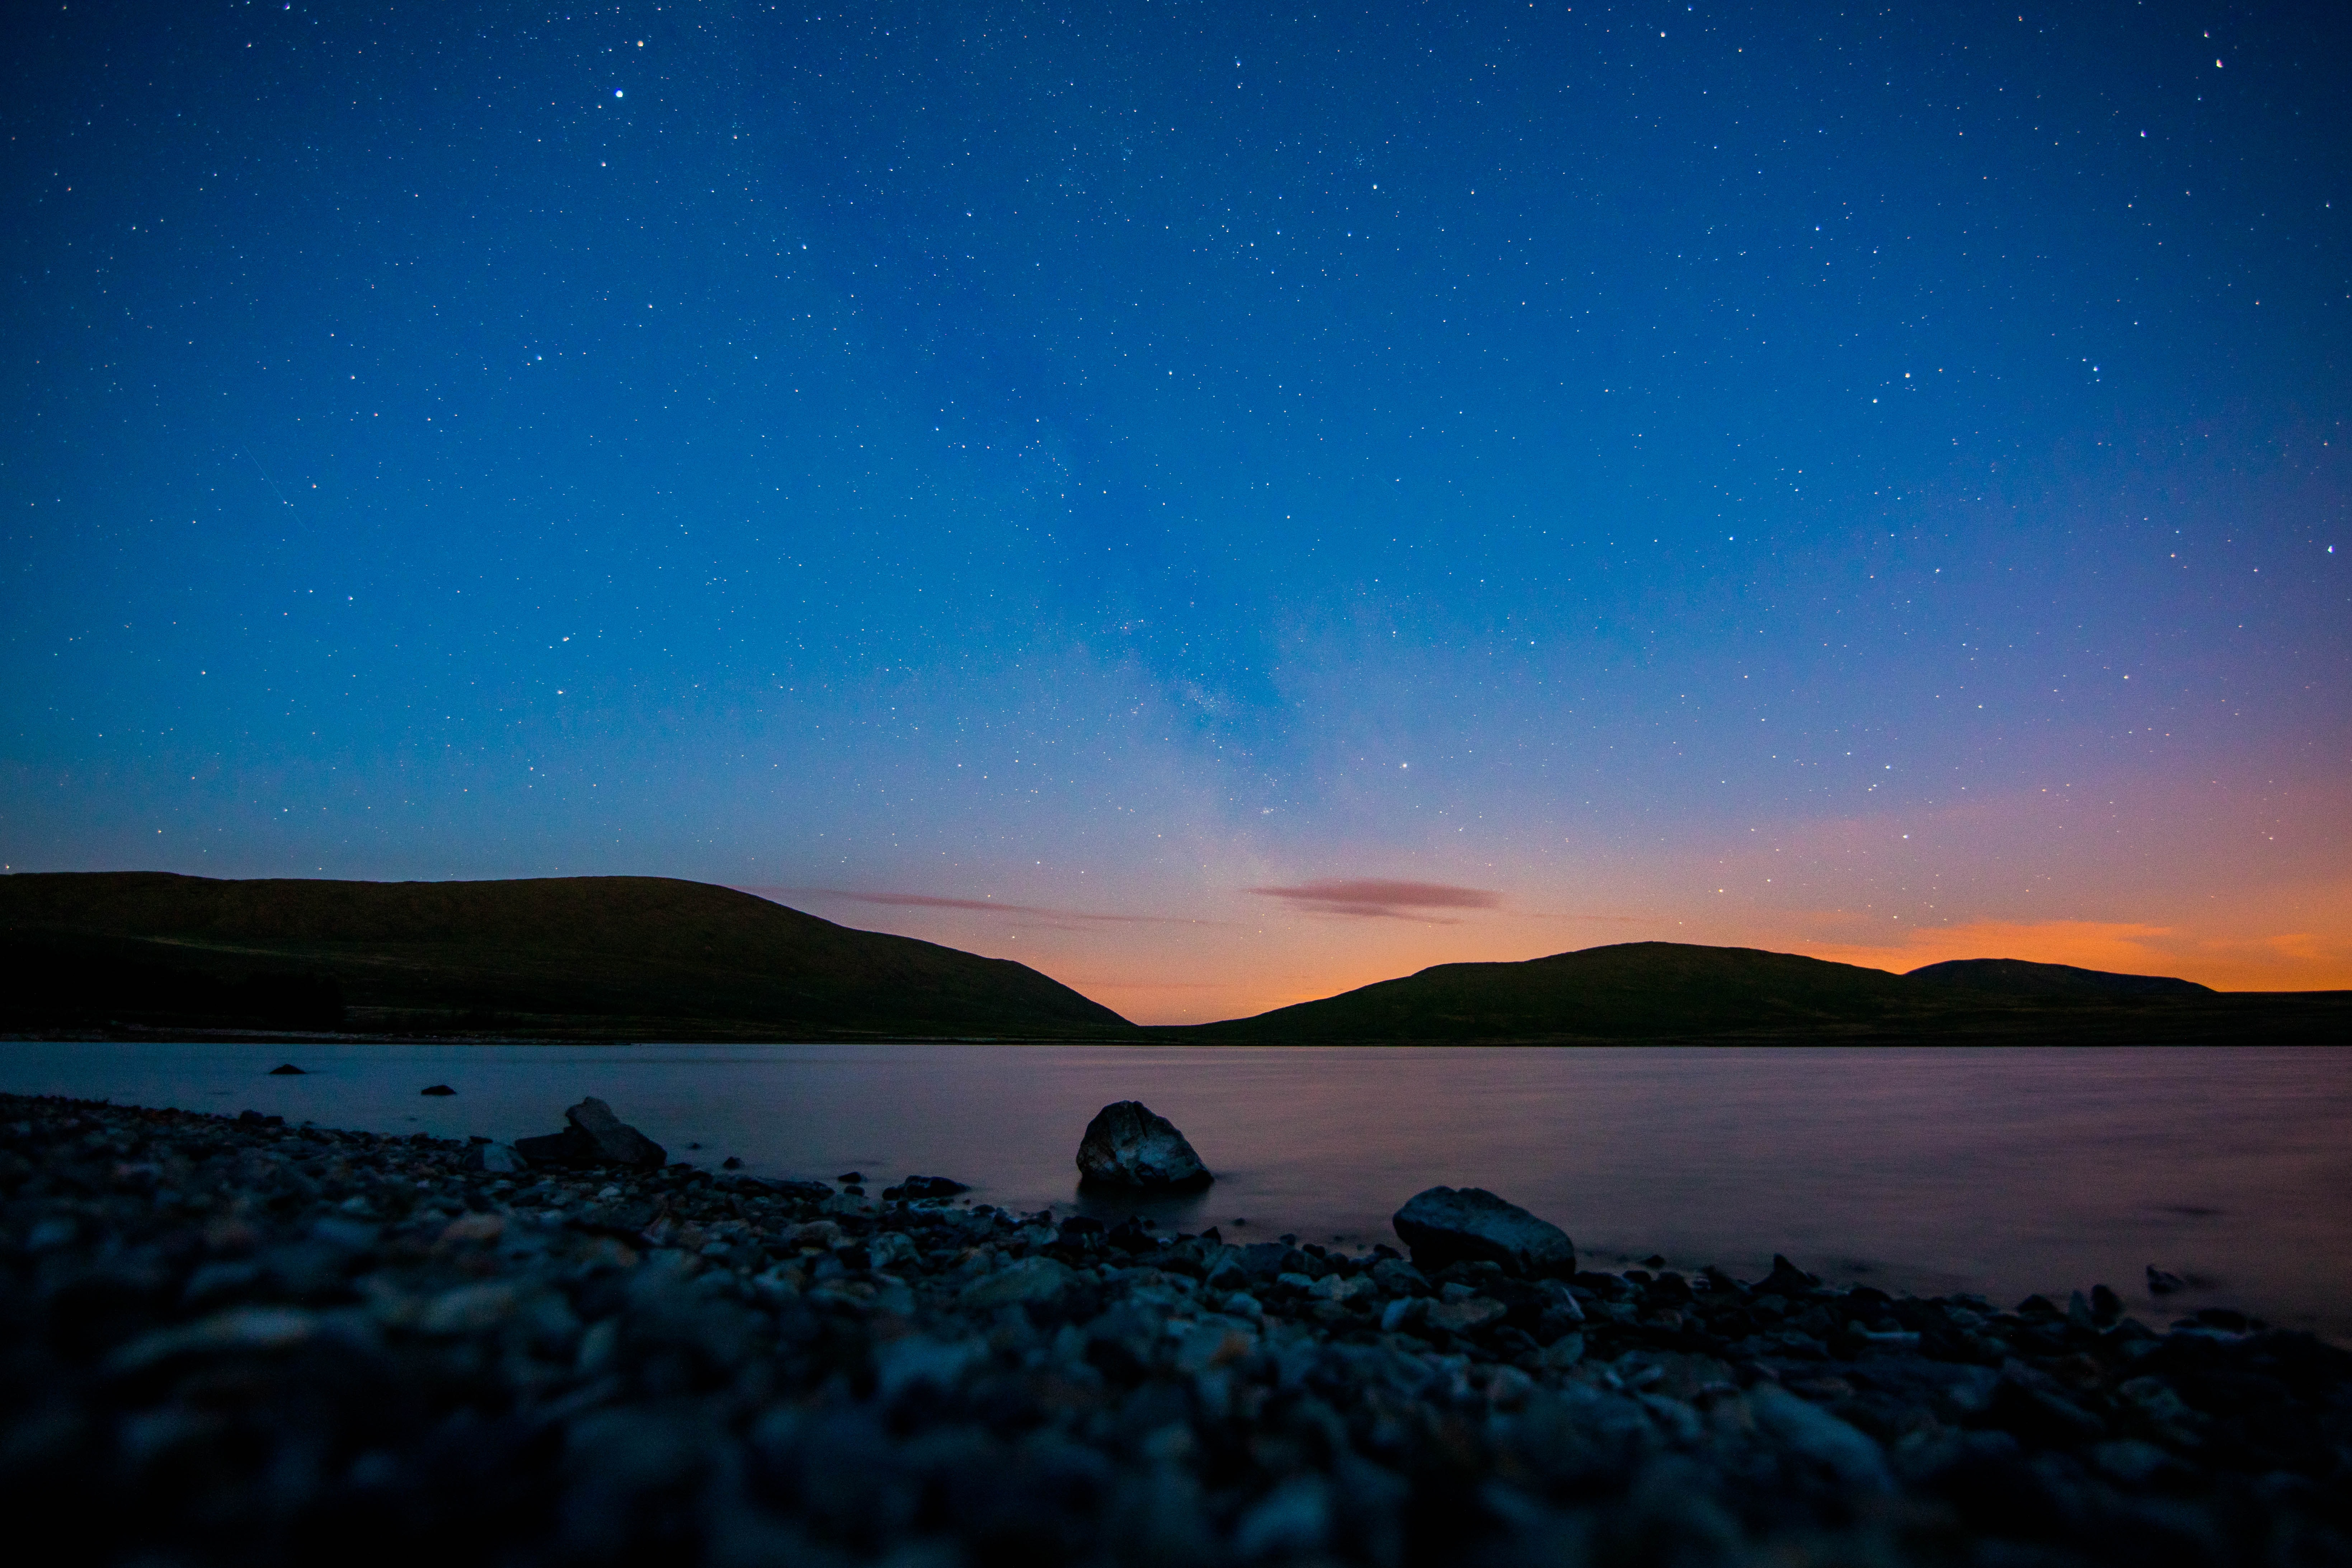 Starry sky over a rocky beach in the Mourne Mountains